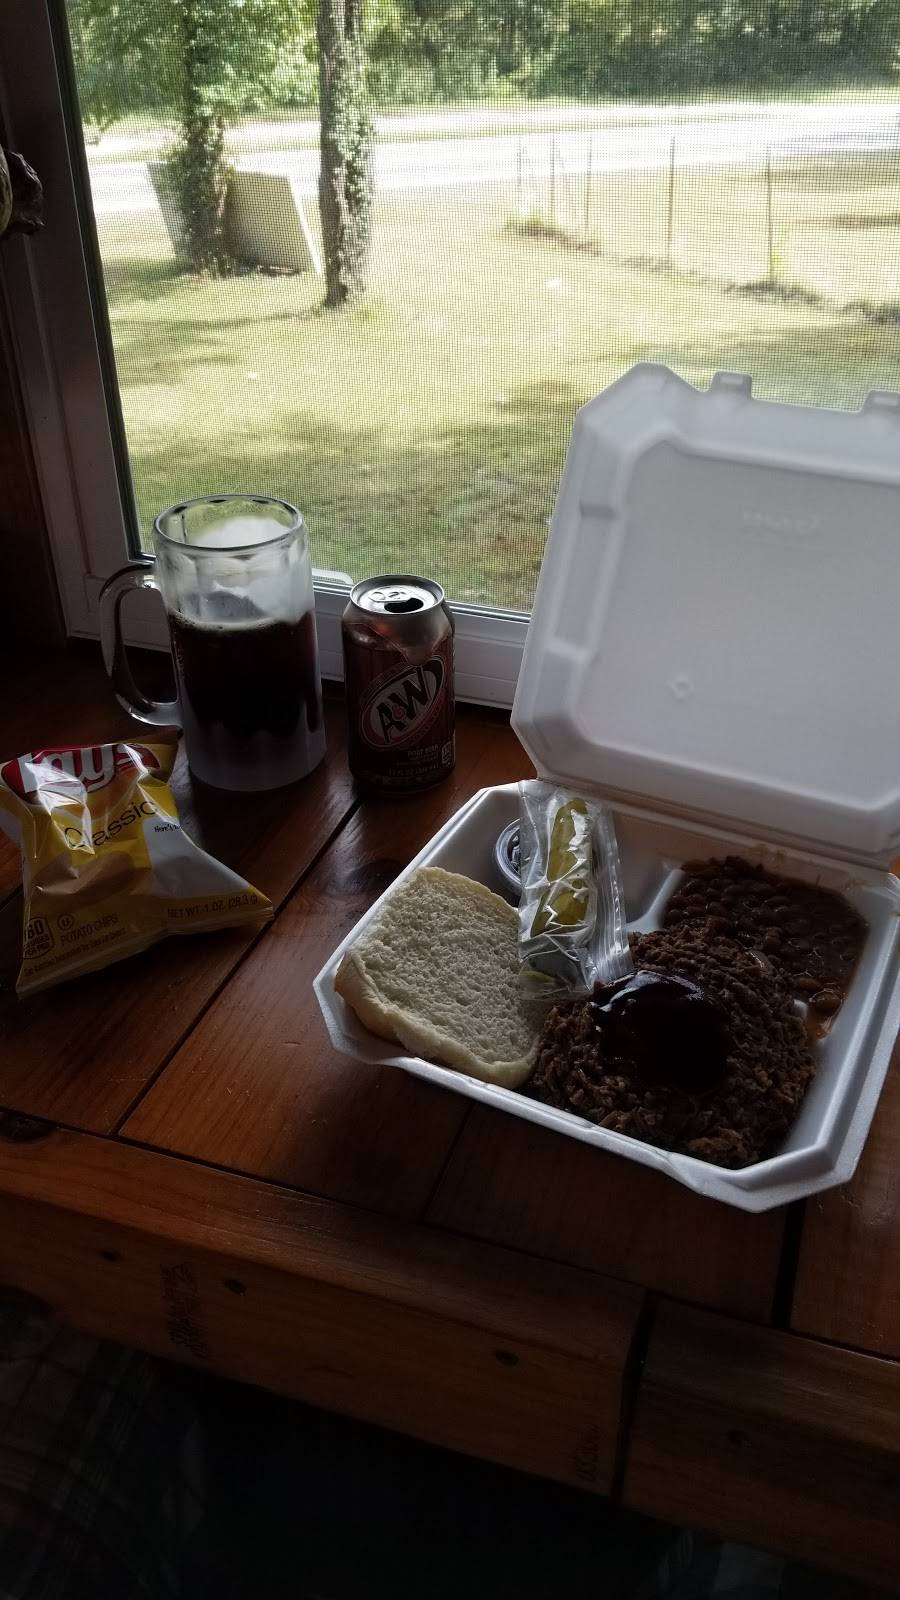 State Line BBQ | restaurant | 29563 State Hwy P, Eagle Rock, MO 65641, USA | 4178466131 OR +1 417-846-6131